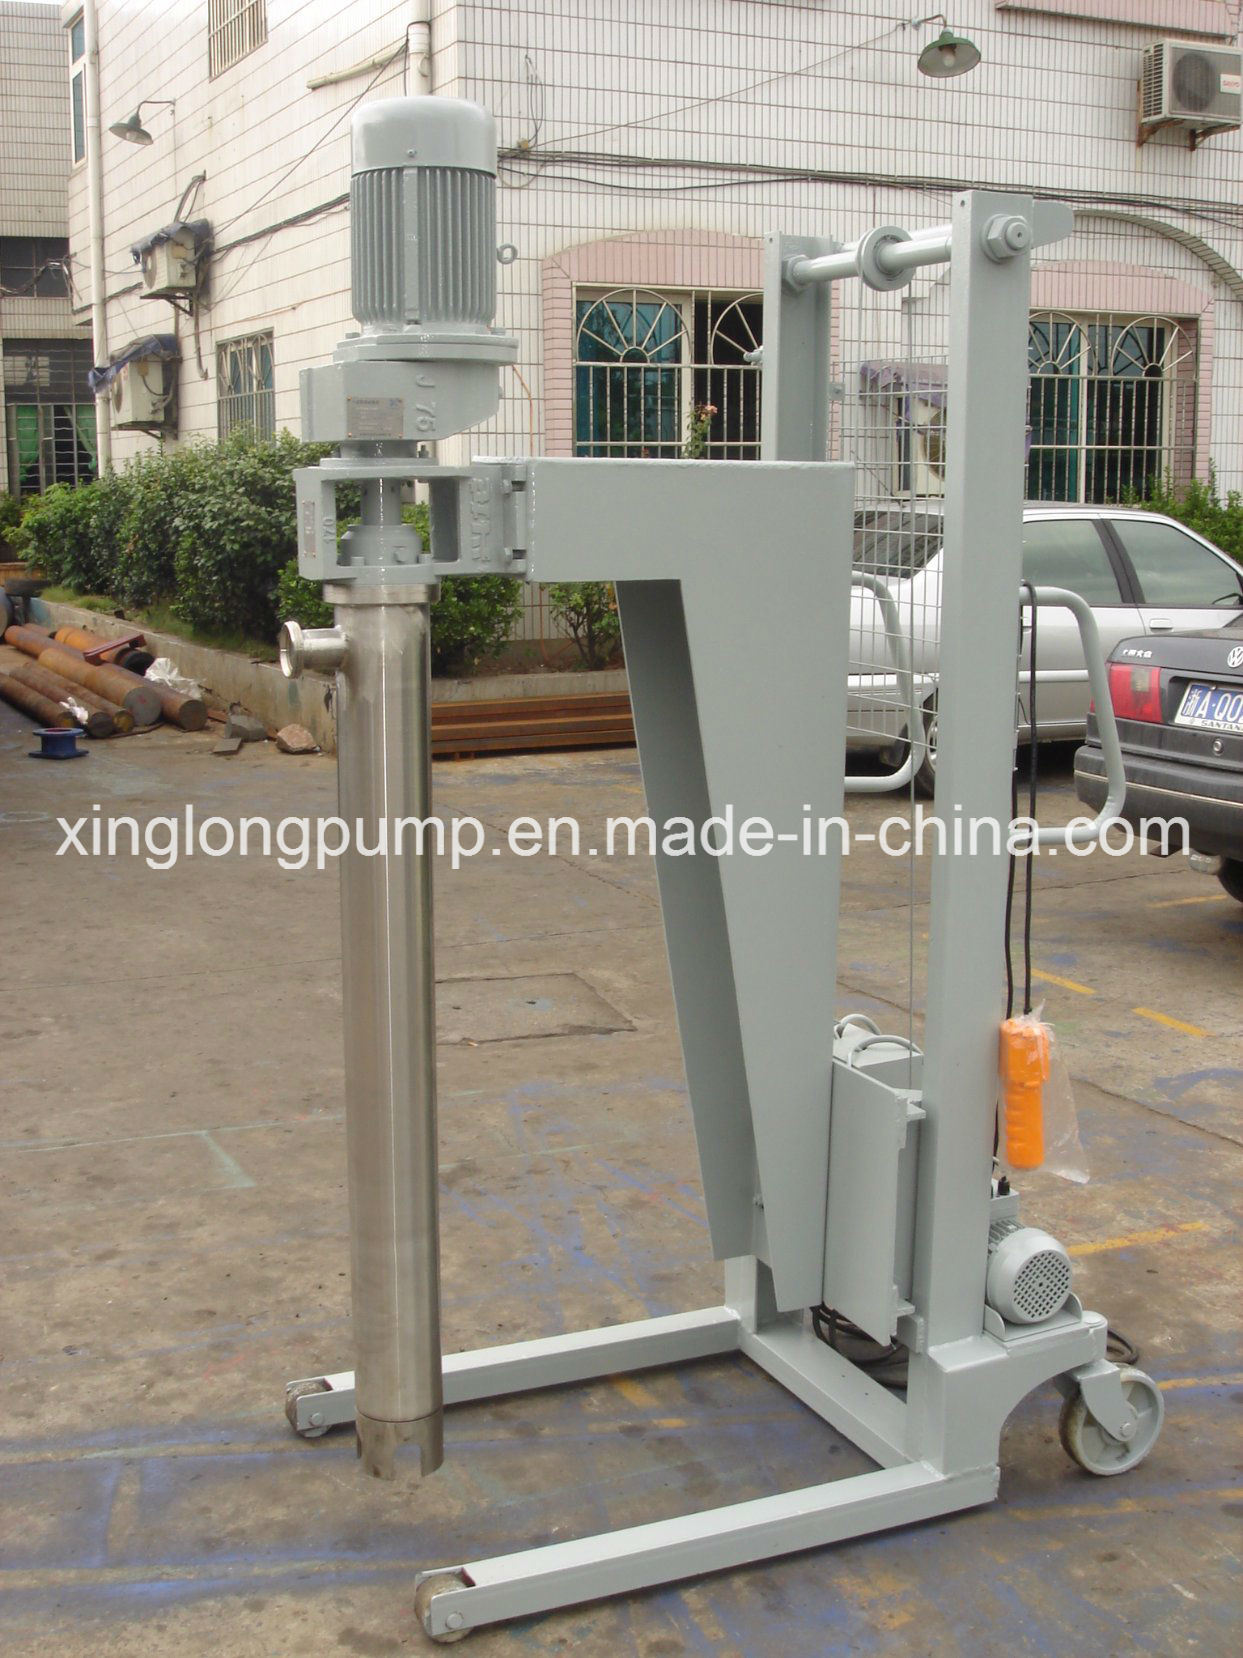 Professional Single Screw Pump with Ce Certificate